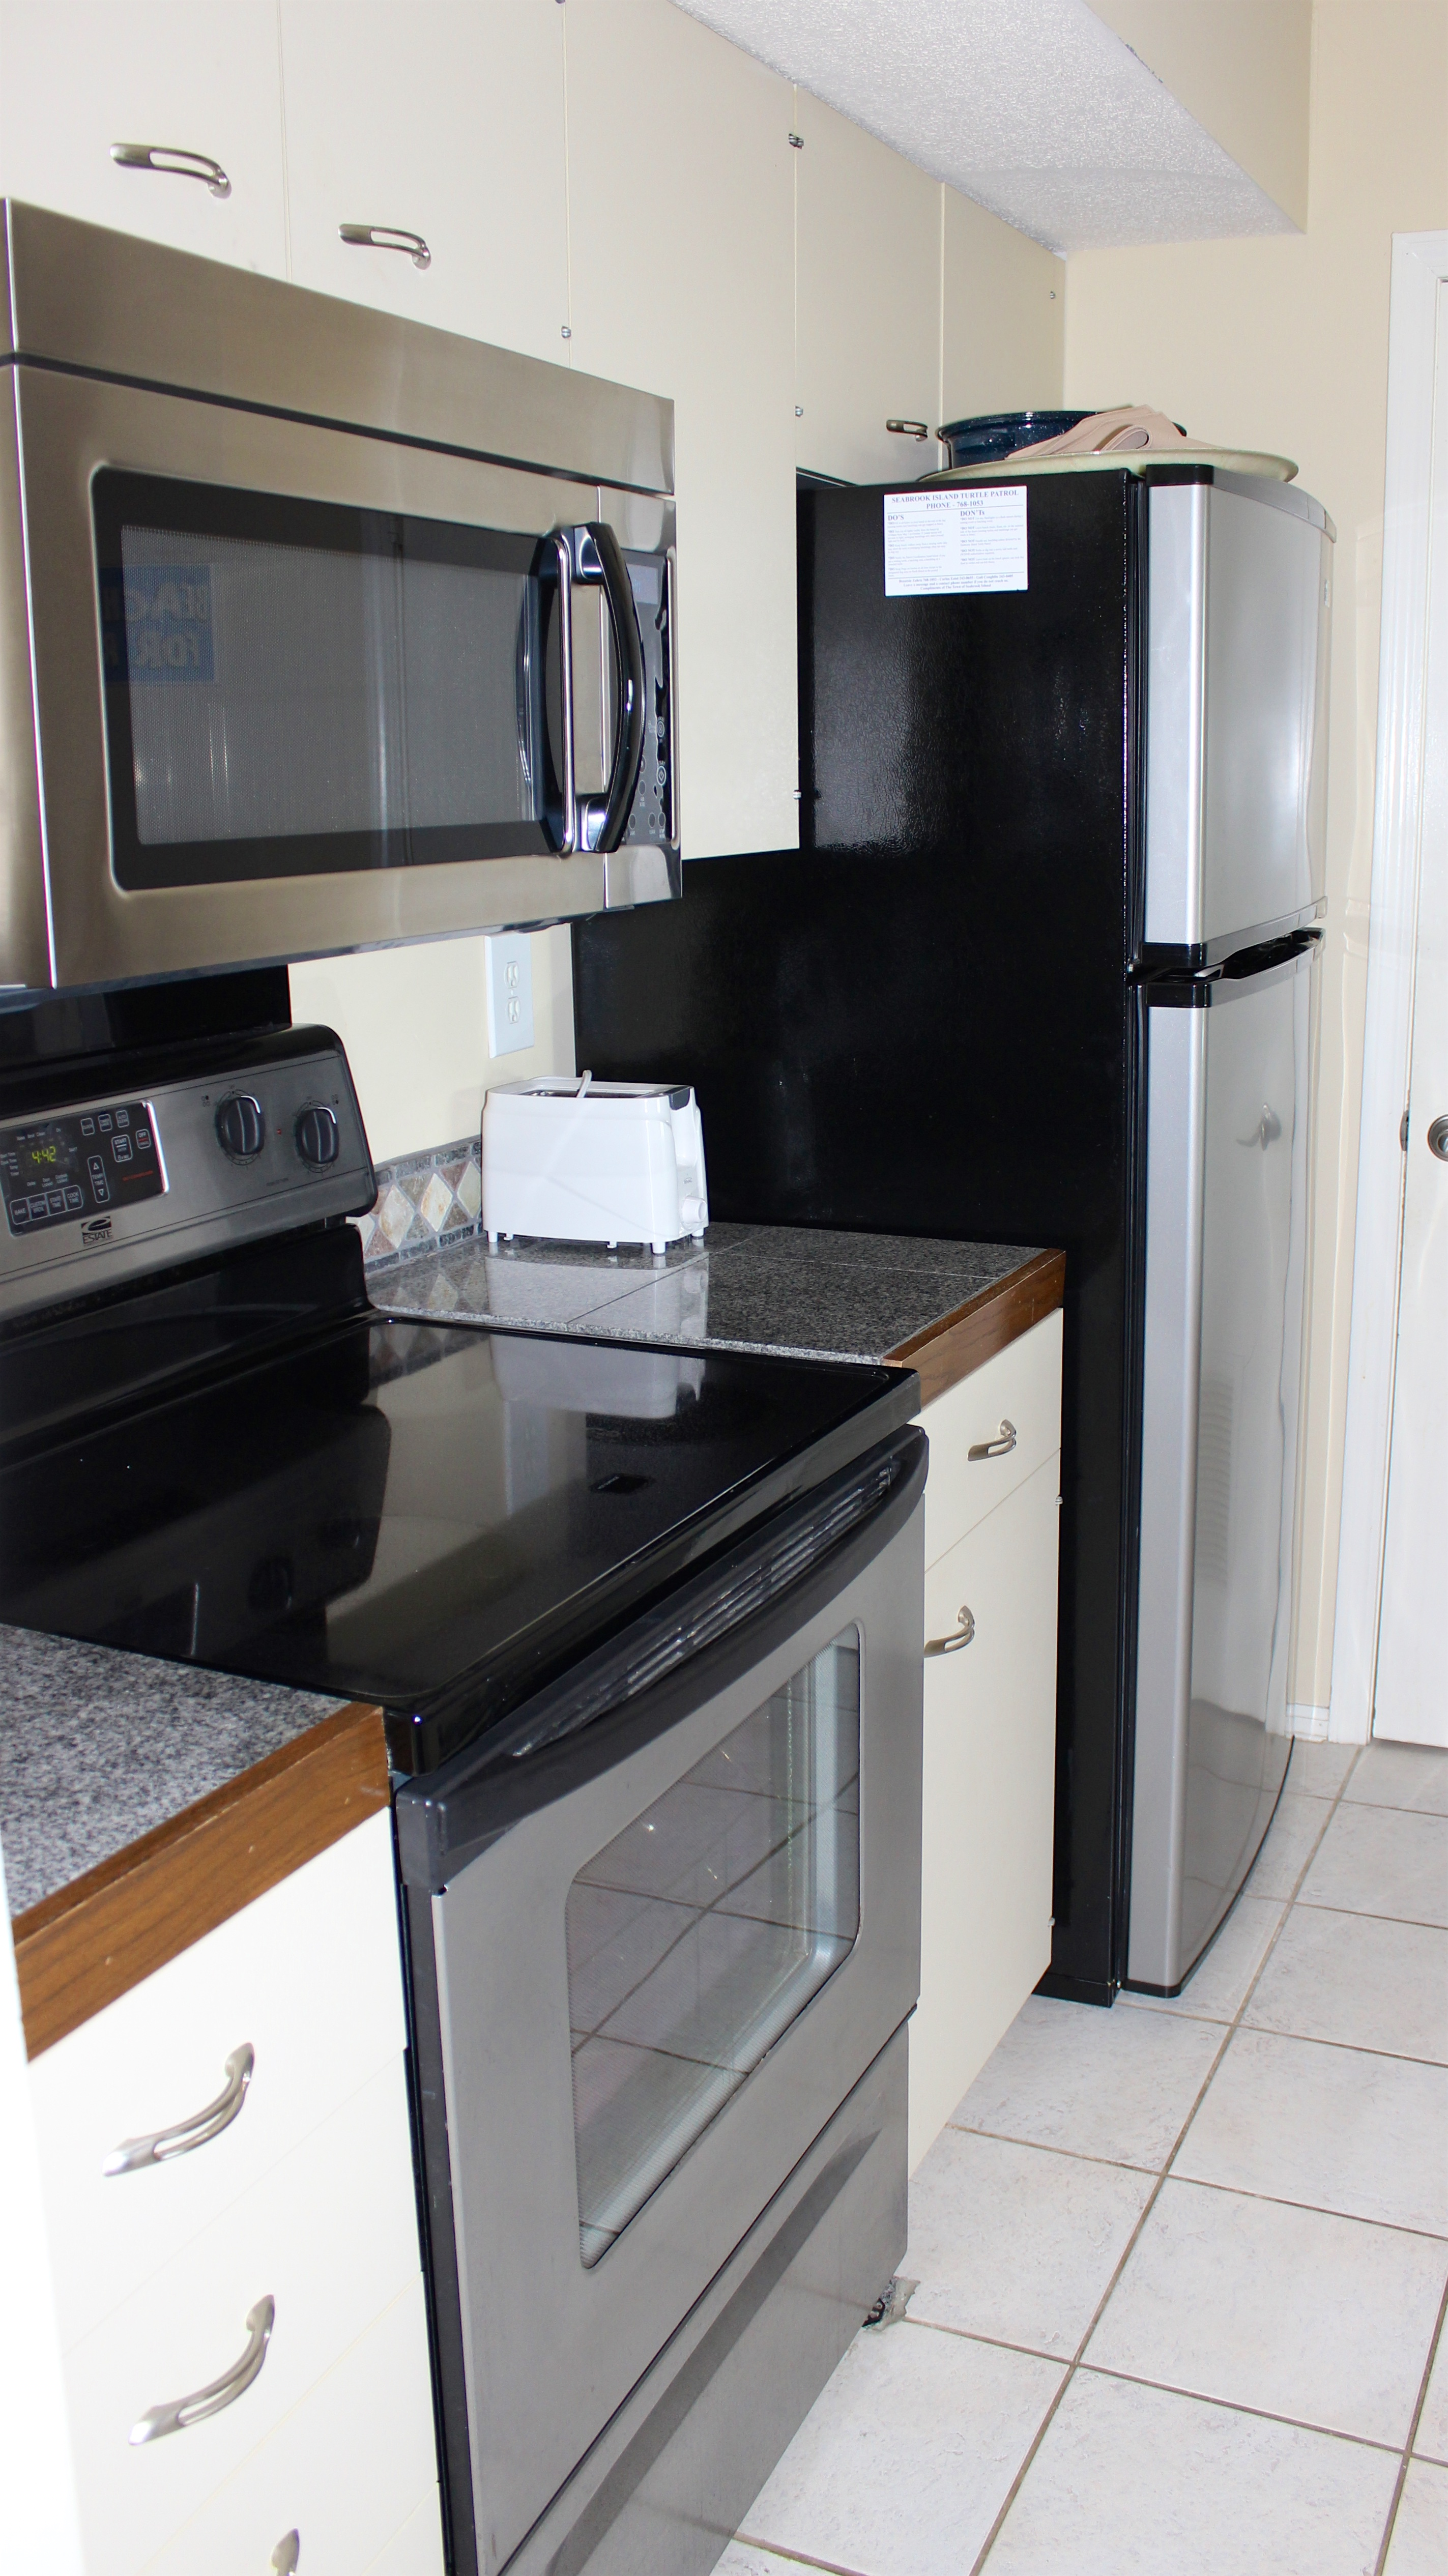 The kitchen has tile counters and stainless appliances.